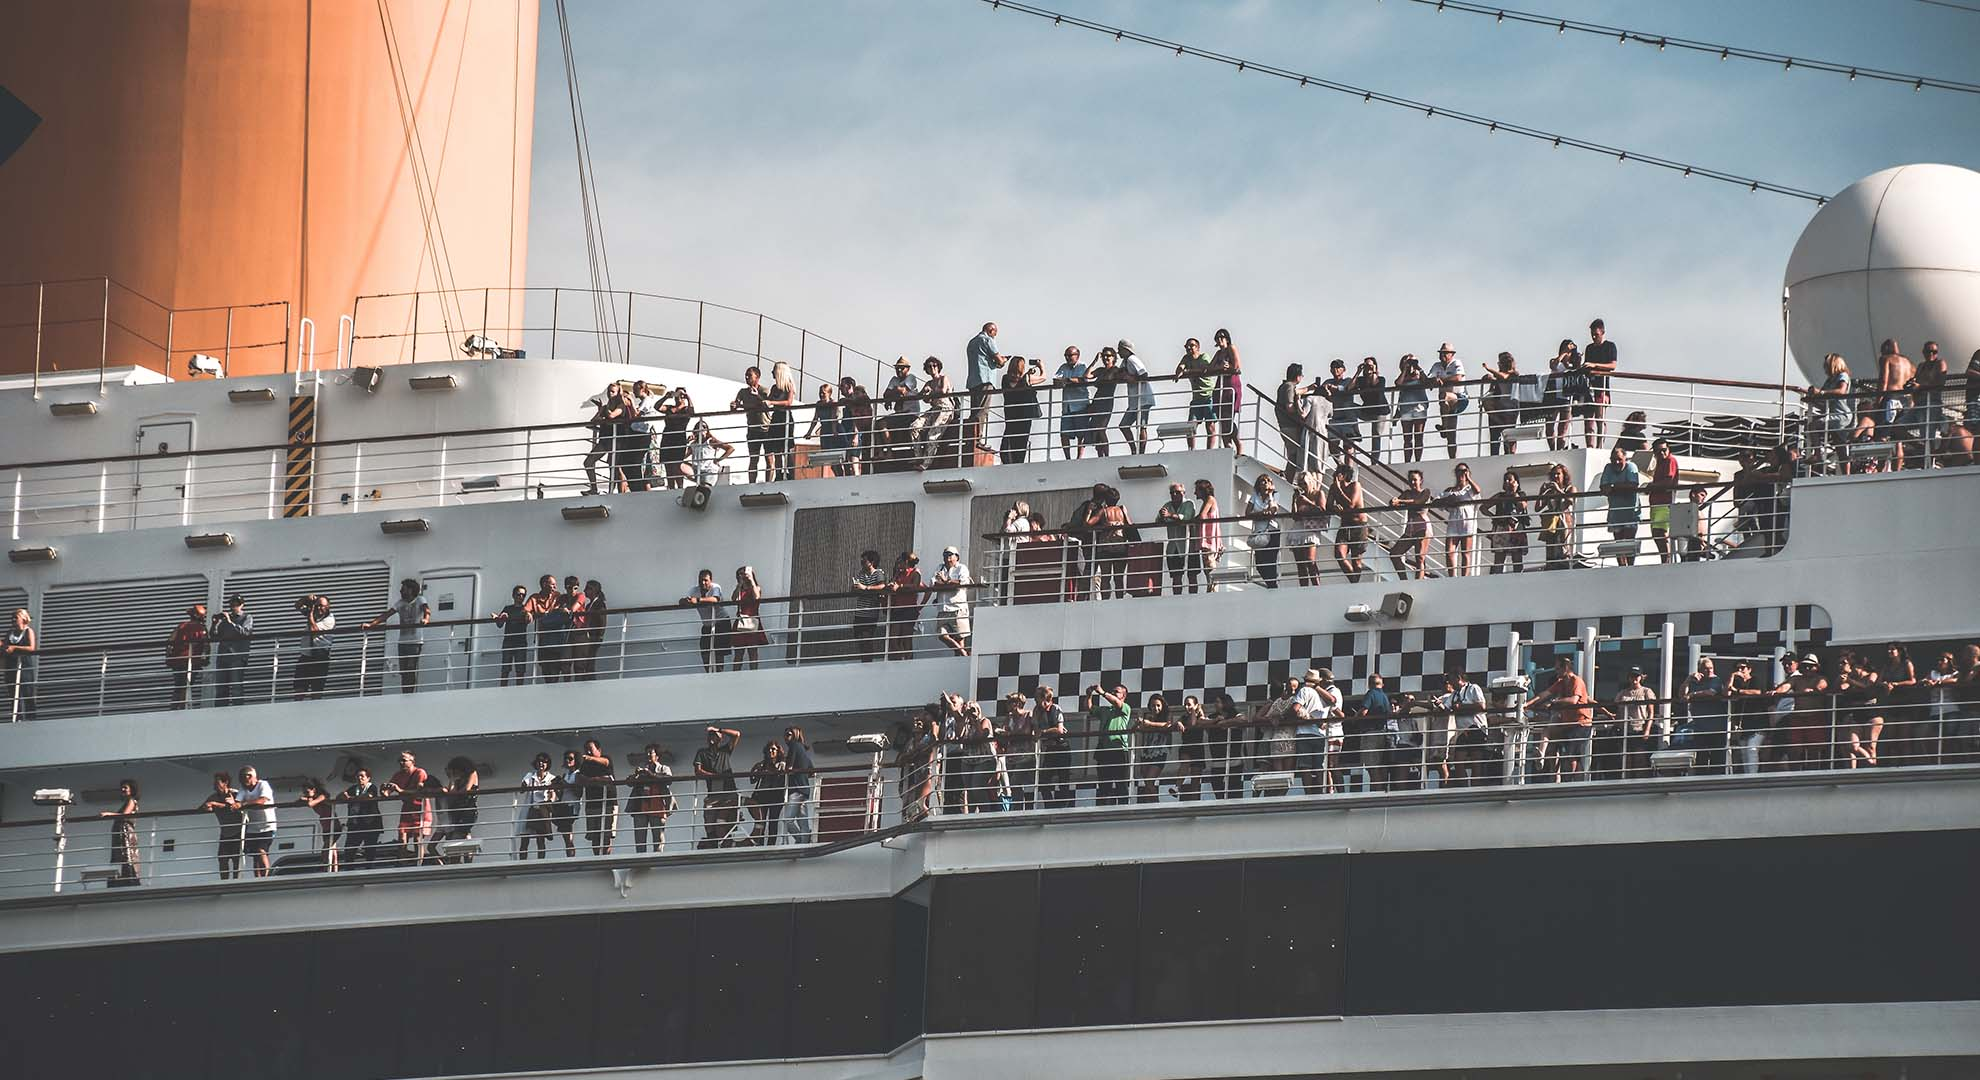 passengers standing on the deck of a cruise